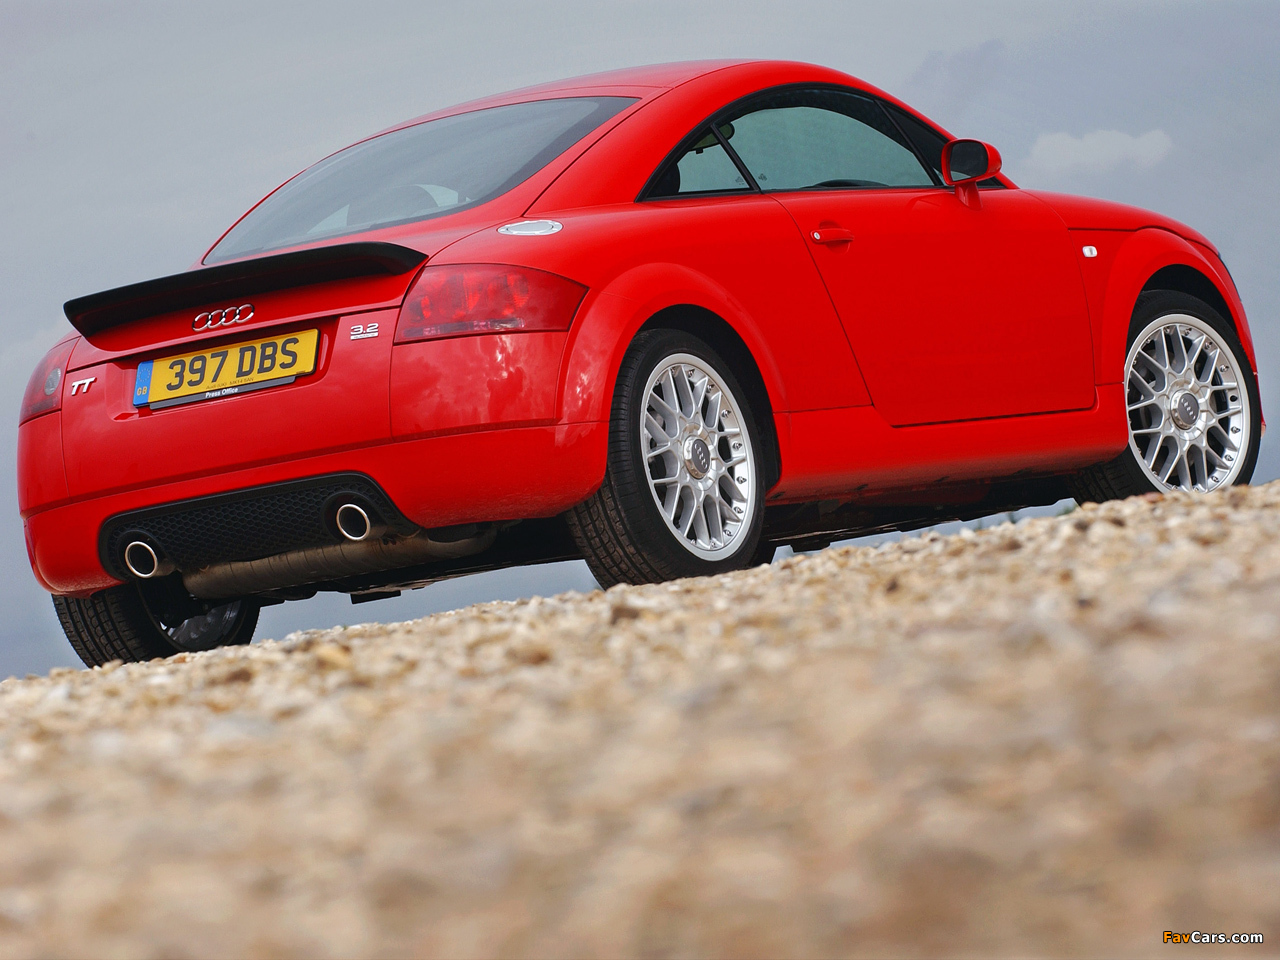 Audi Tt 3 2 Quattro Coupe Uk Spec 8n 2003 06 Images